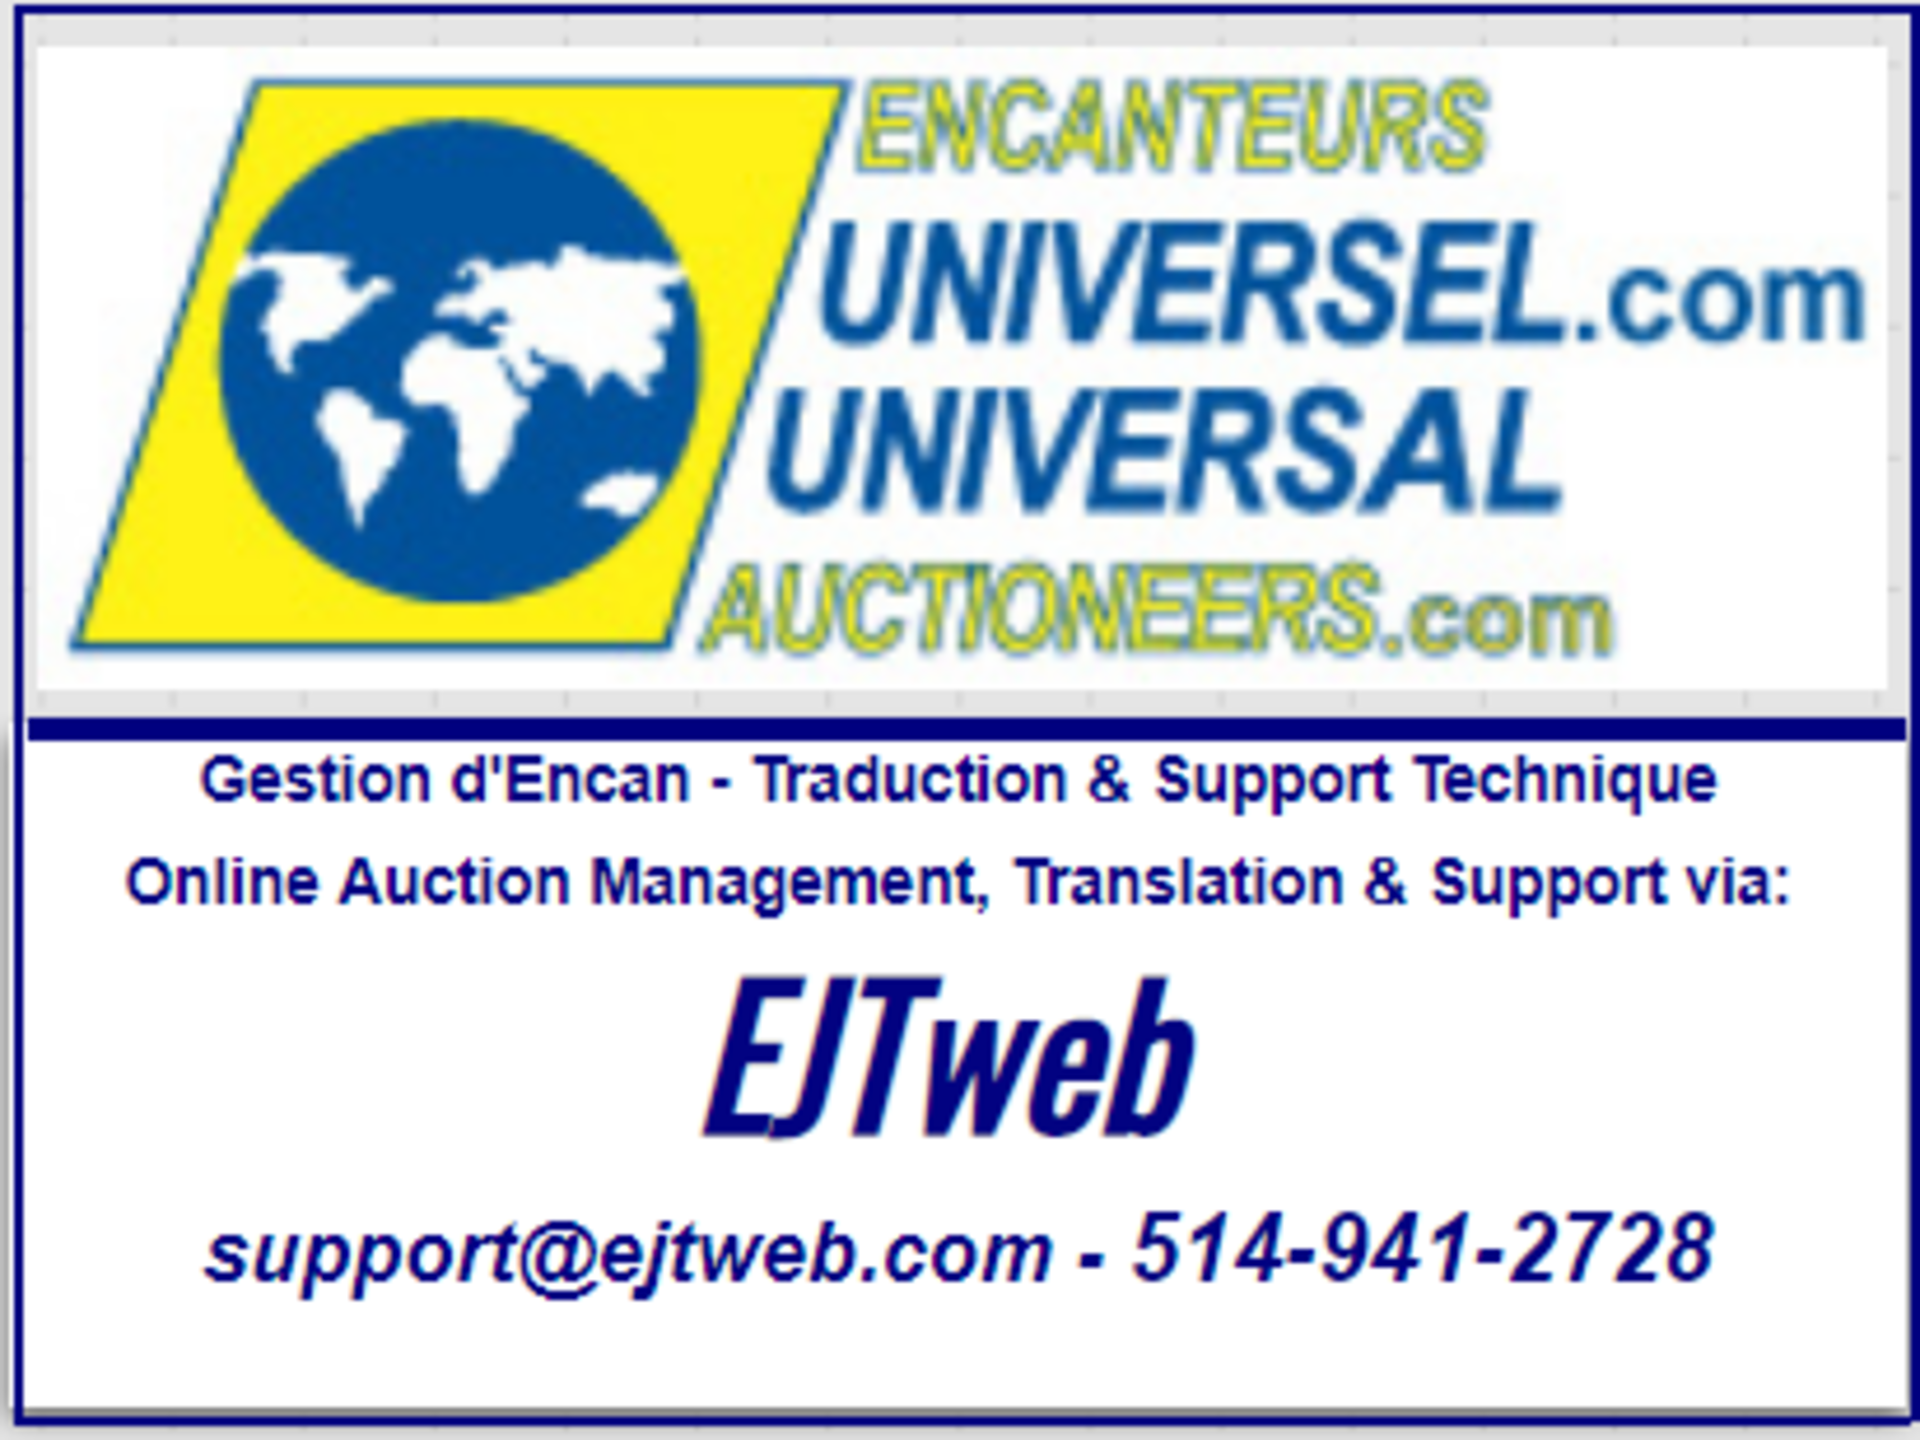 Support Technique / Traductions / Technical Support / Translations: 514-941-2728